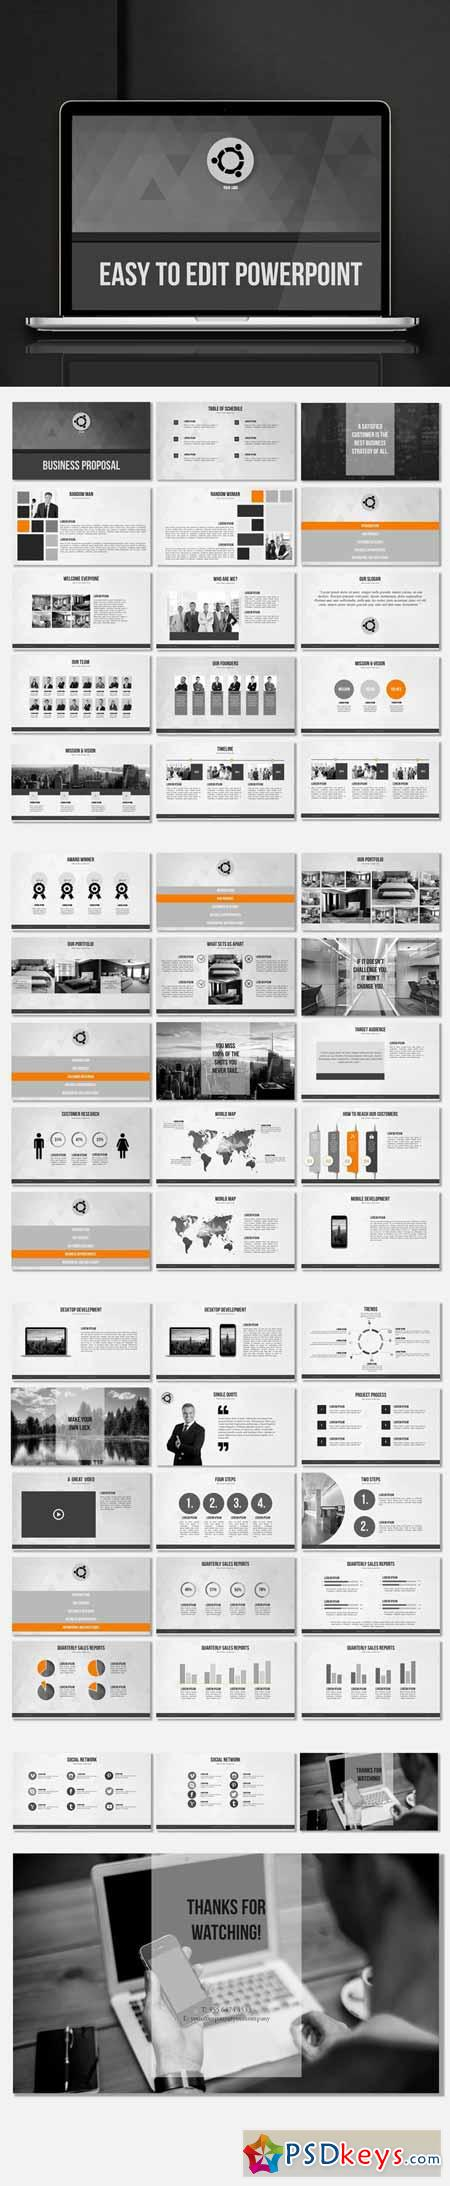 Minimalistic Powerpoint Template 623518